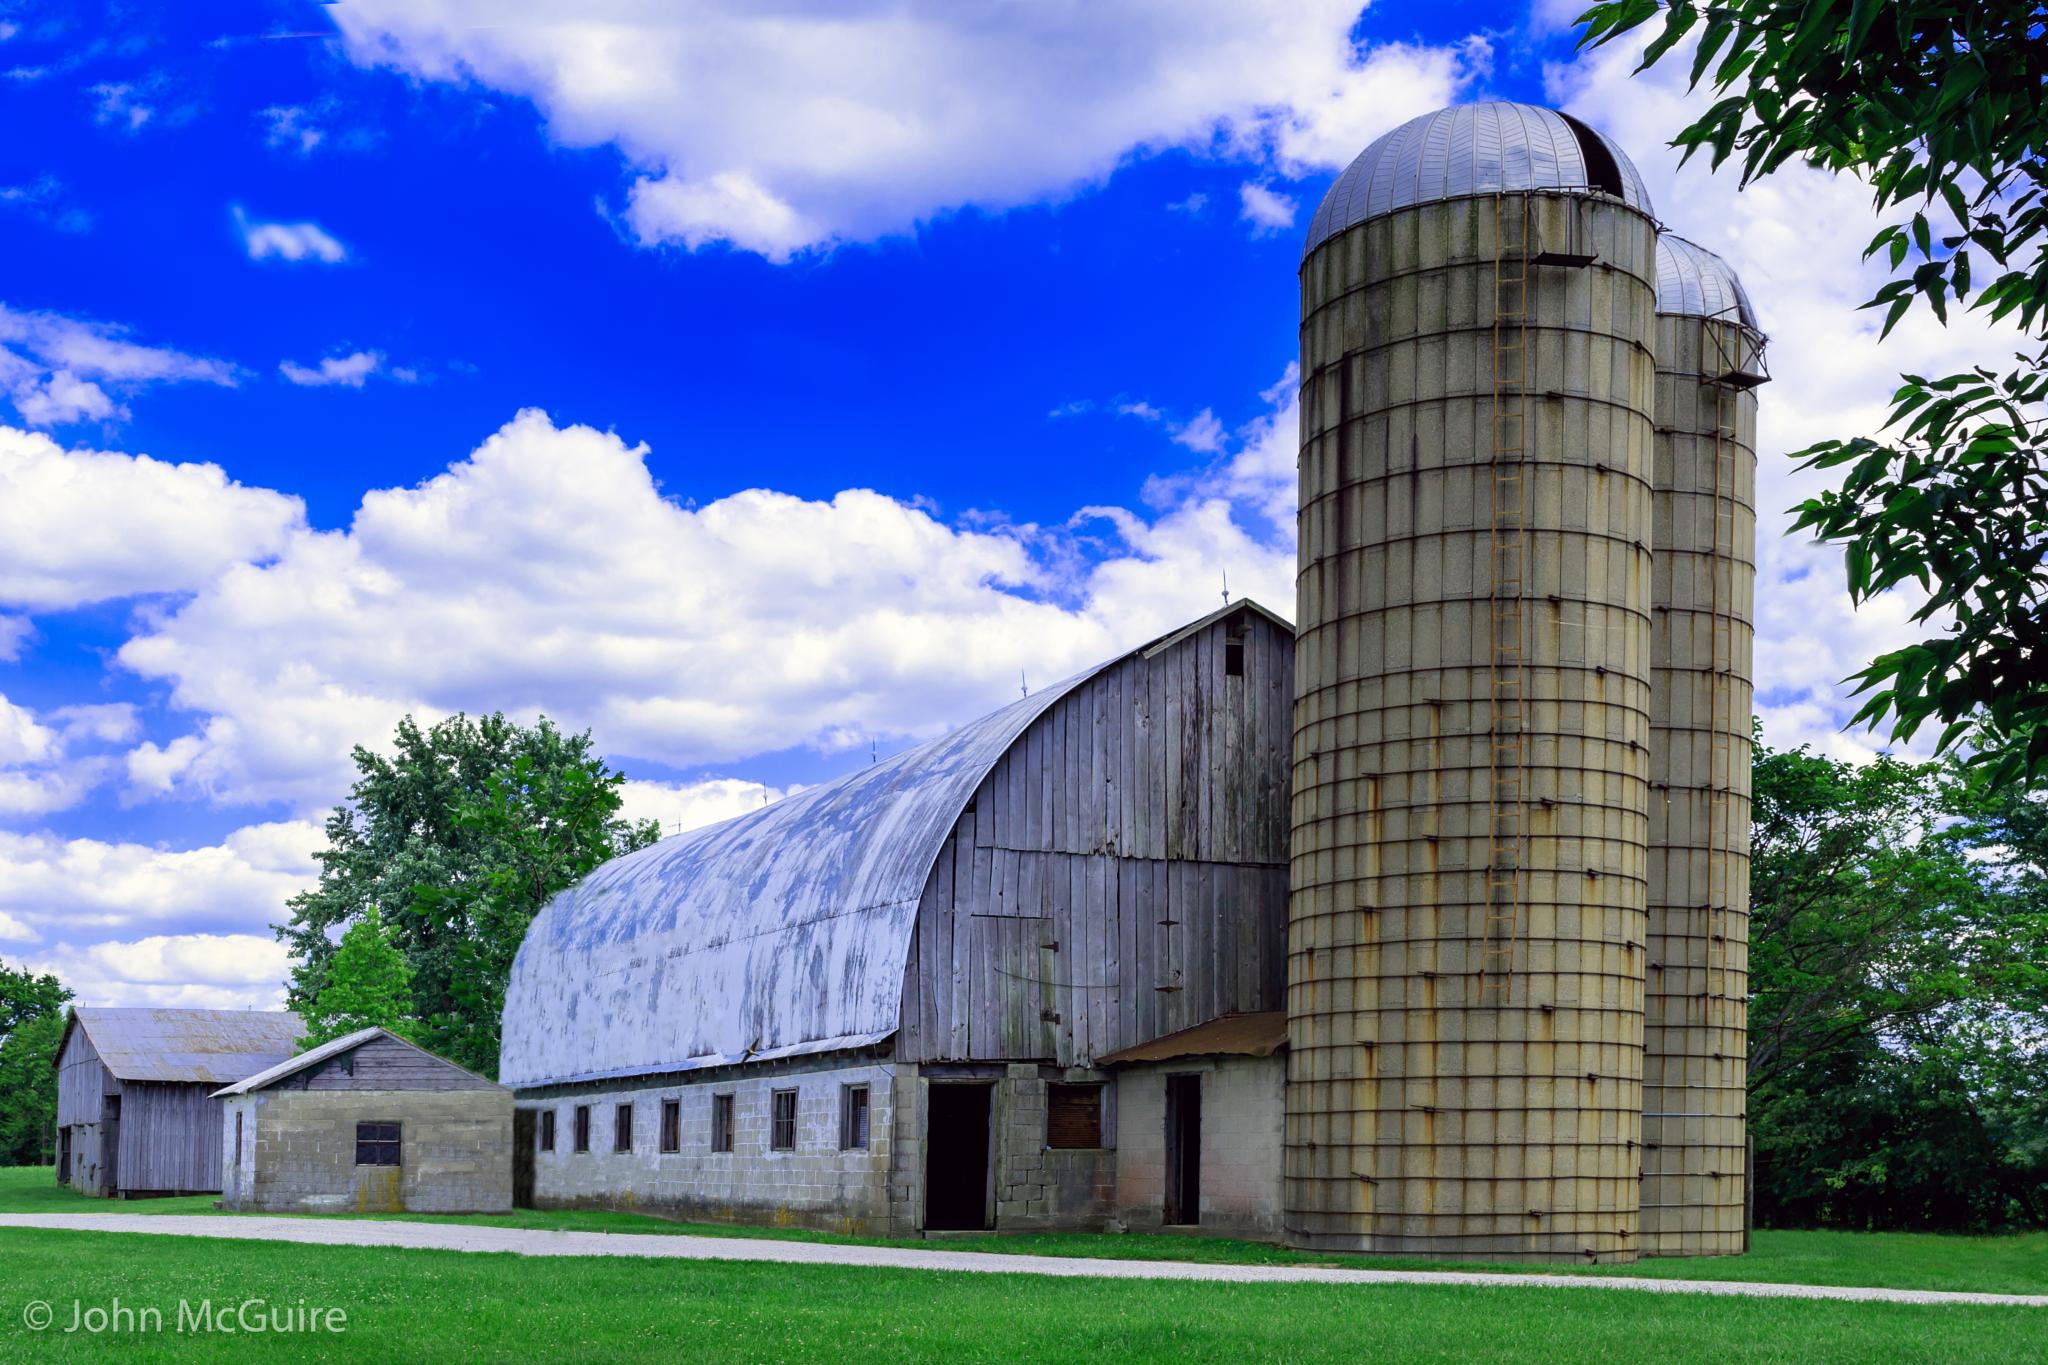 Old Dairy Barn by JohnMcGuire